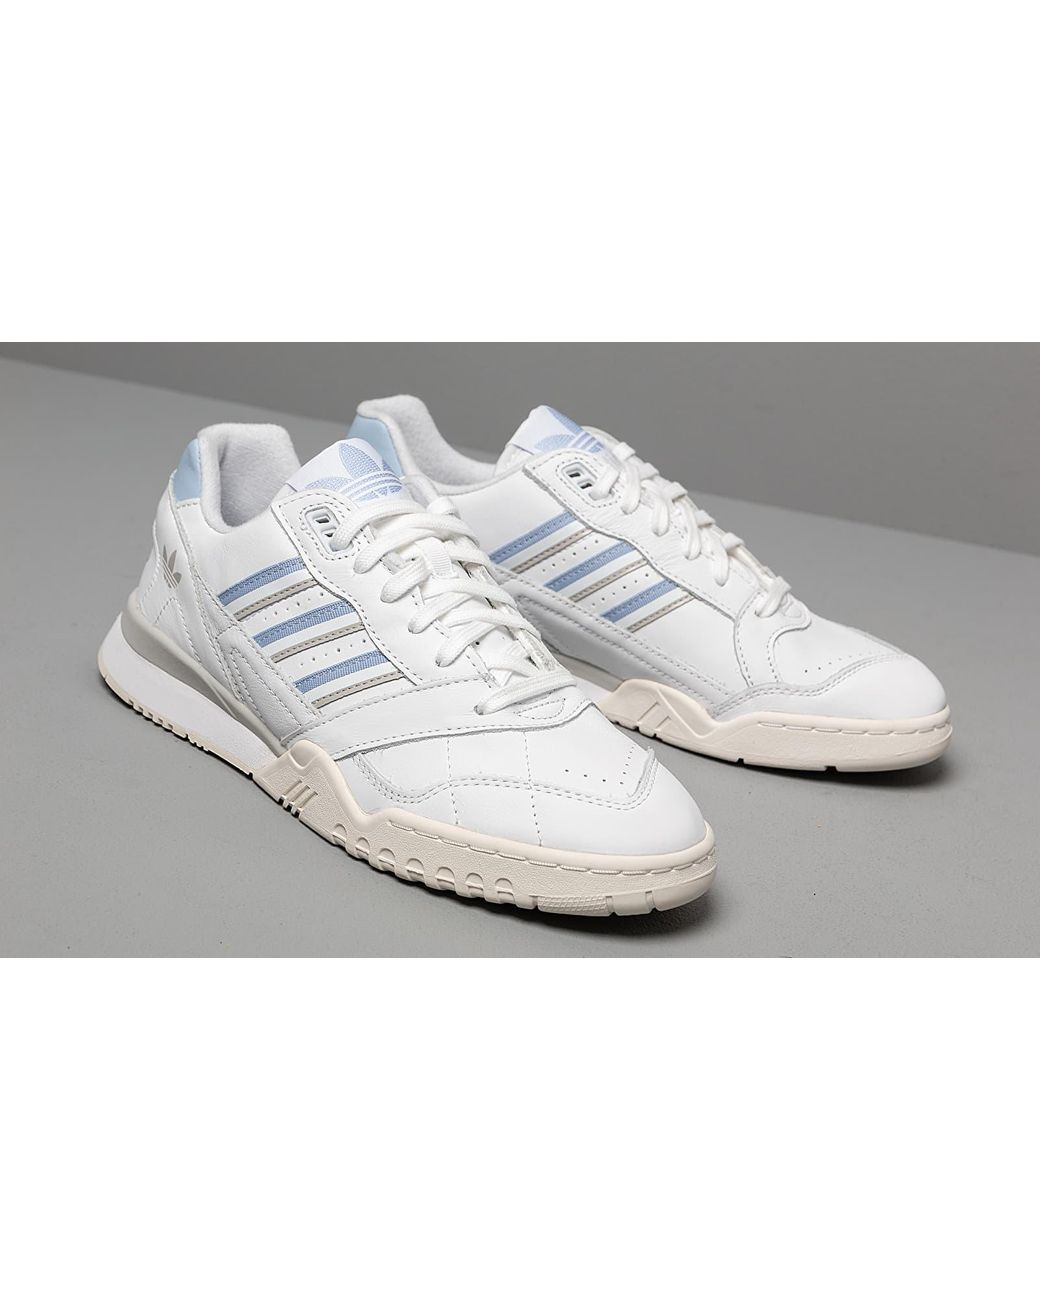 Women's Adidas A.r. Sneaker W Ftw White Periwinkle Cloud White